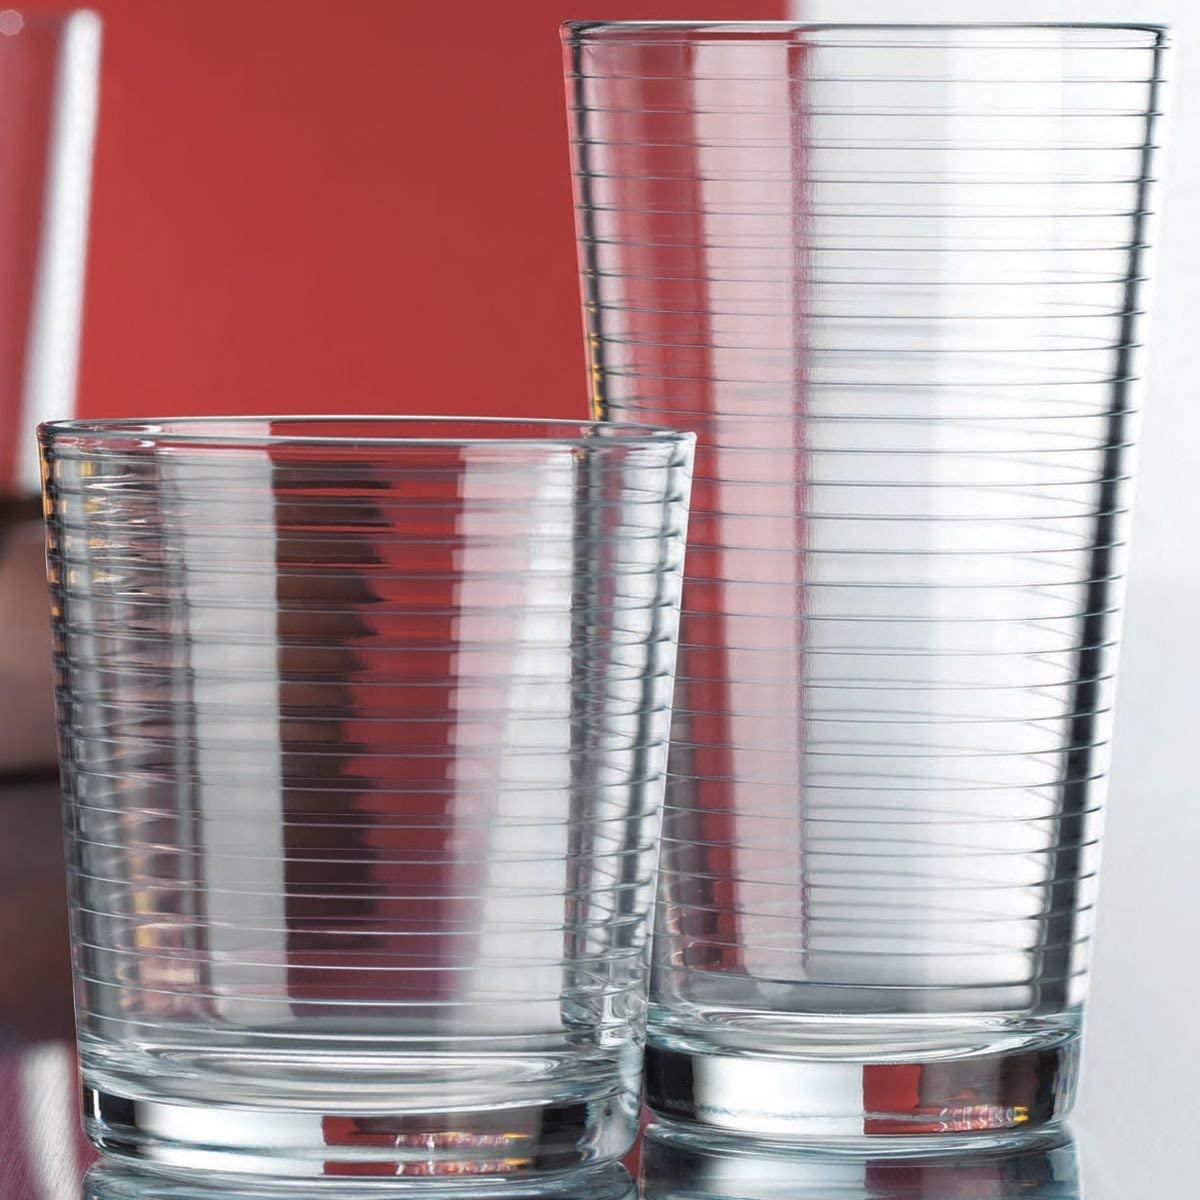 Set of 16 Heavy Base Ribbed Durable Drinking Glasses Includes 8 Cooler Glasses (17oz) and 8 Rocks Glasses (13oz), Clear Glass Cups - Elegant Glassware Set